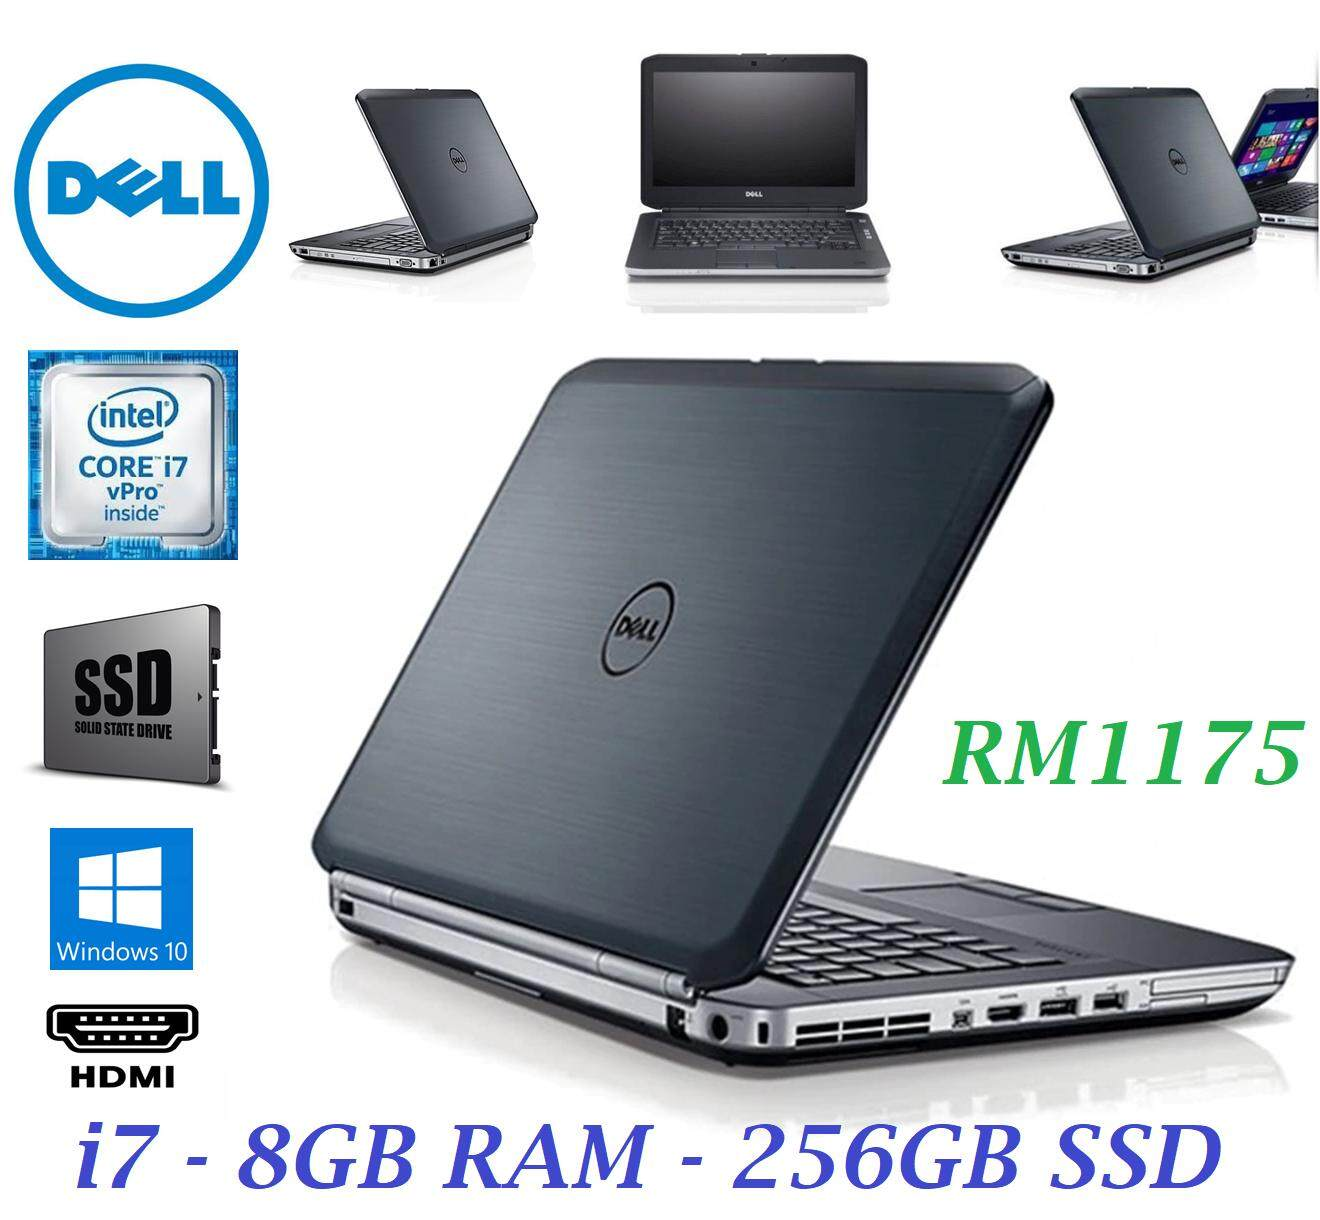 REFURBISHED DELL LATITUDE E5430 SUPERDUTY CORE i7 / 8GB RAM / 256GB SSD / 1 YEAR WARRANTY Malaysia